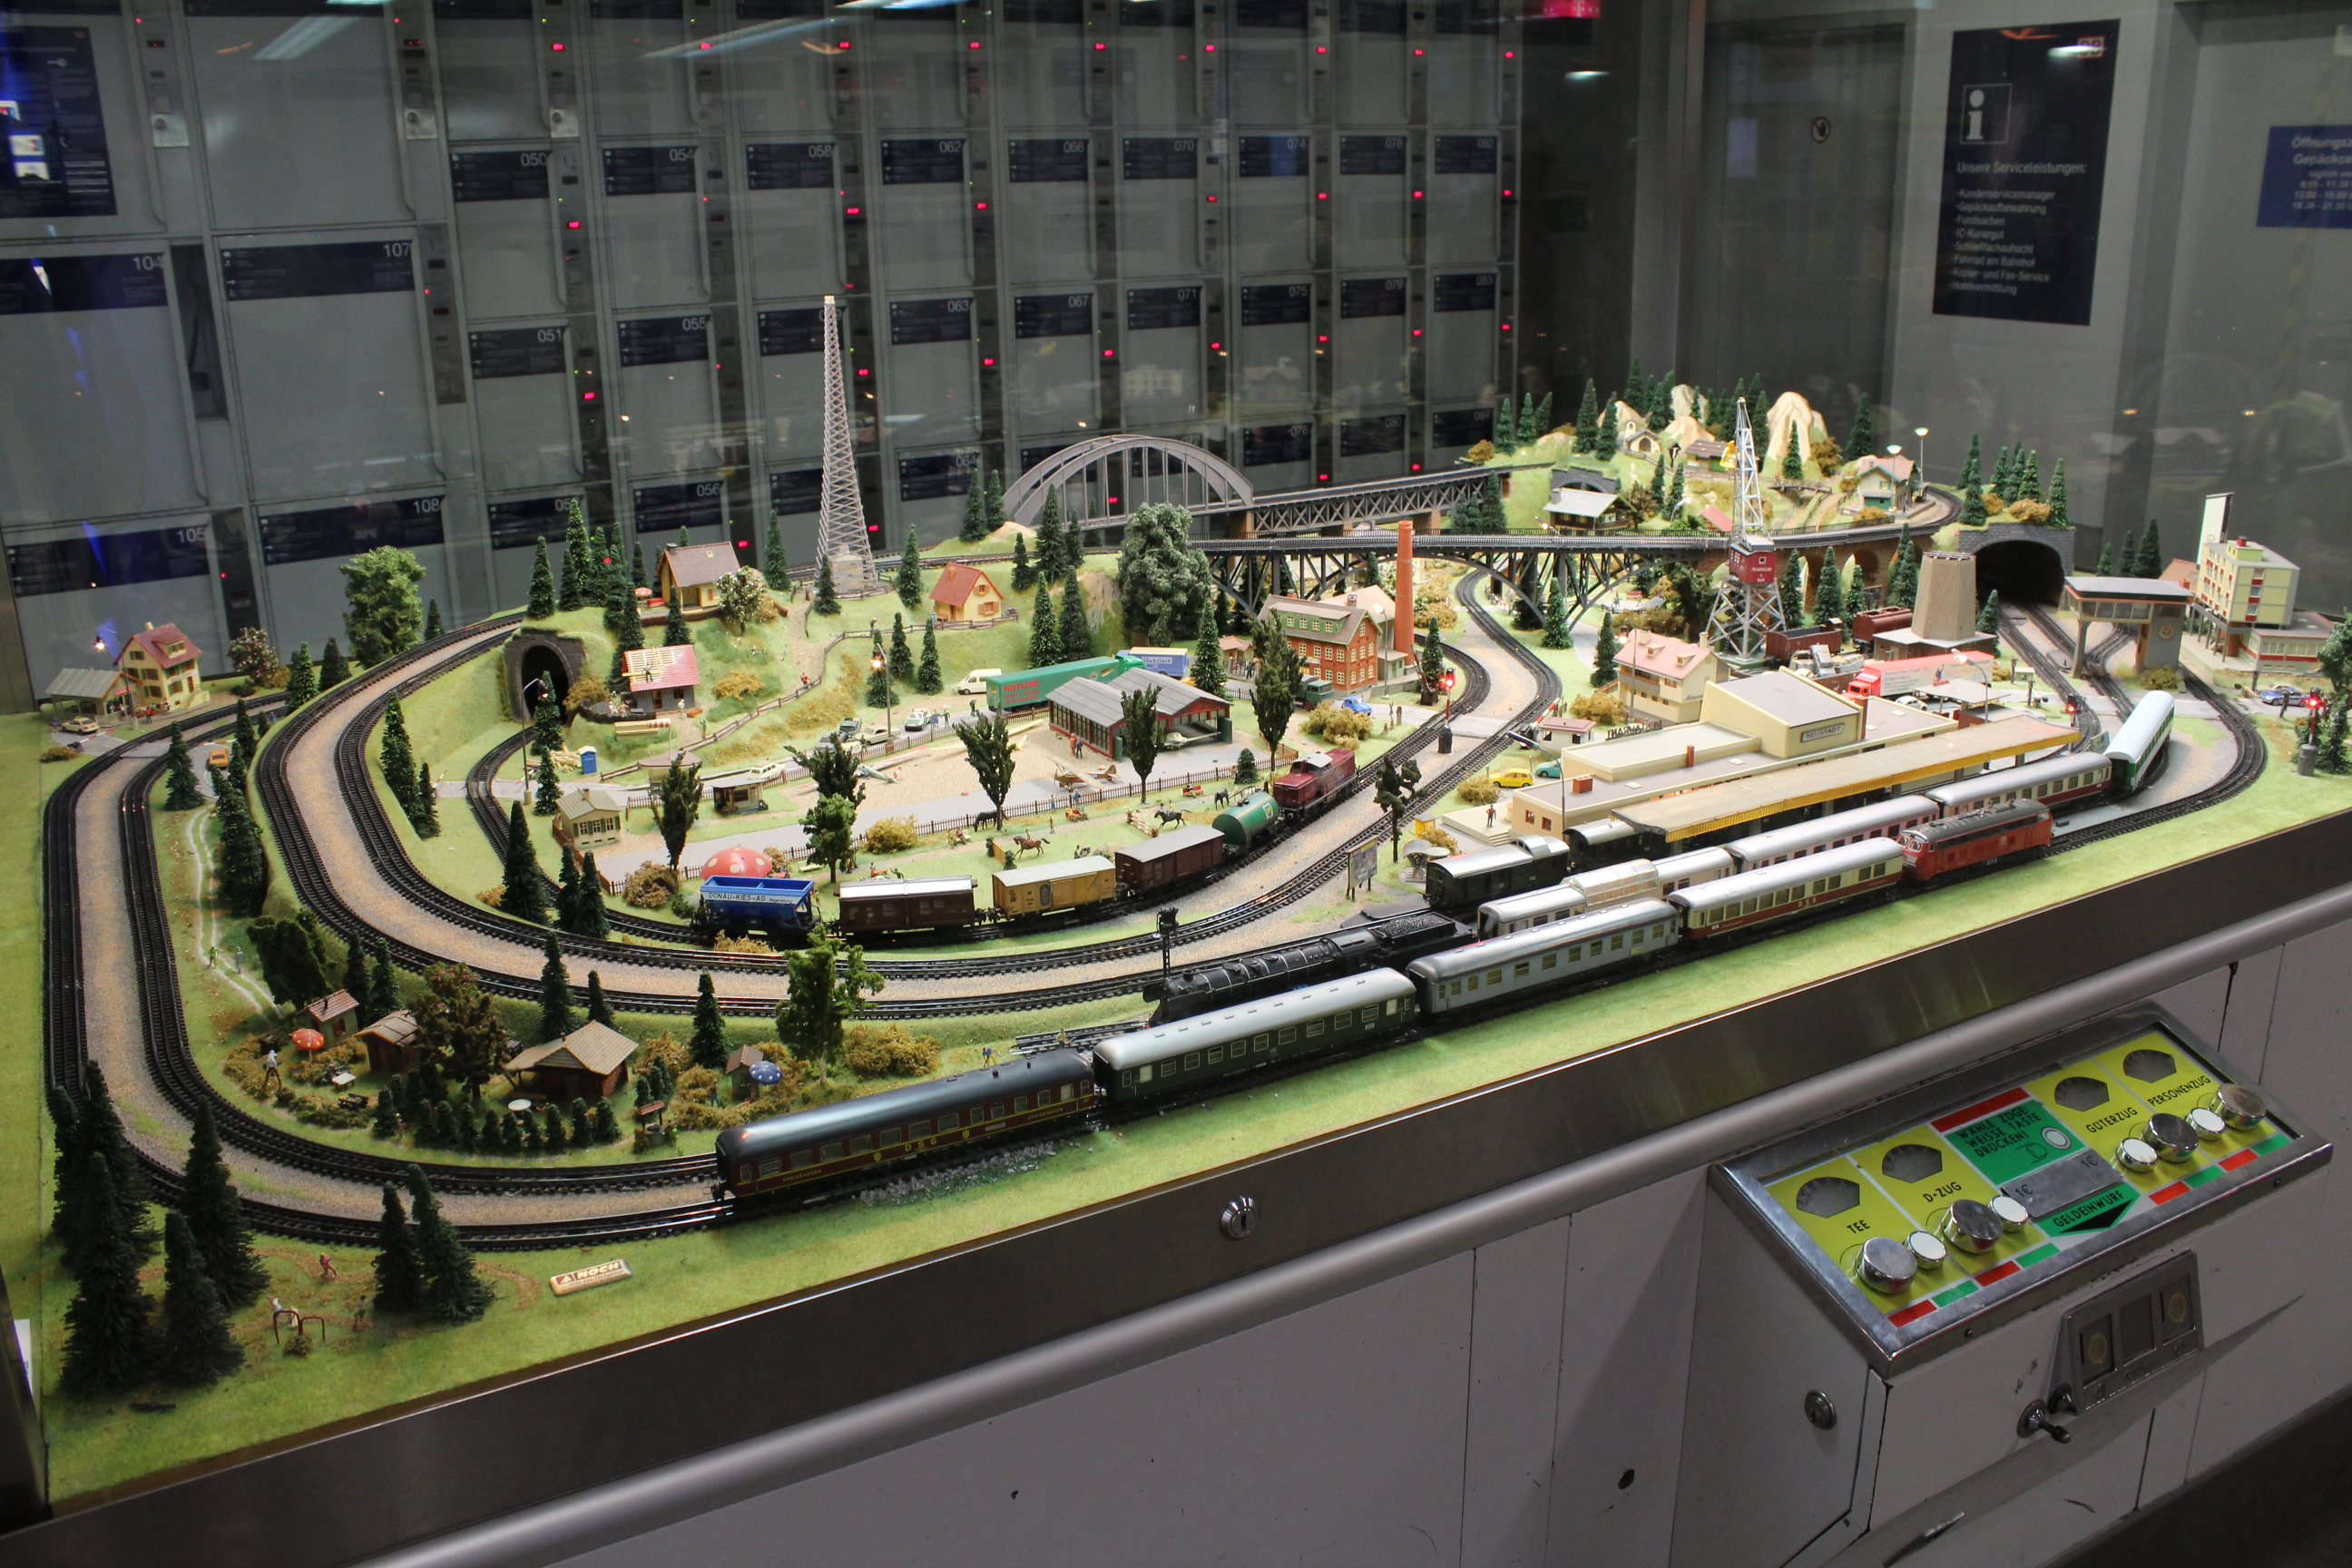 File:Model railroad layout displayed at the Dresden Hauptbahnhof ...